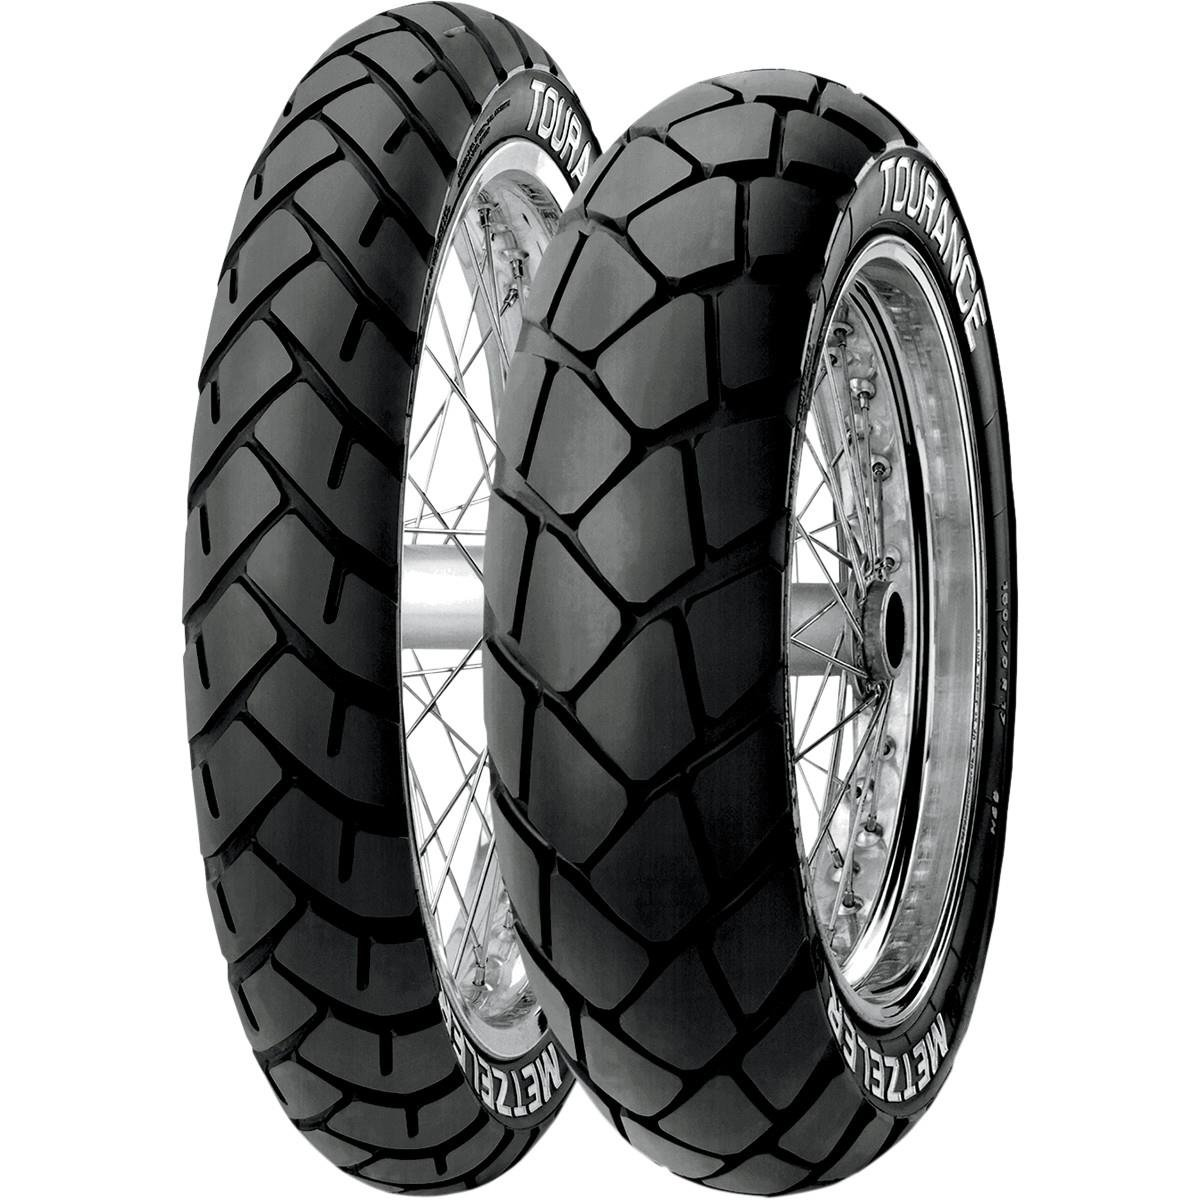 Metzeler Tourance Front Motorcycle Tire 110/80-19 1127800